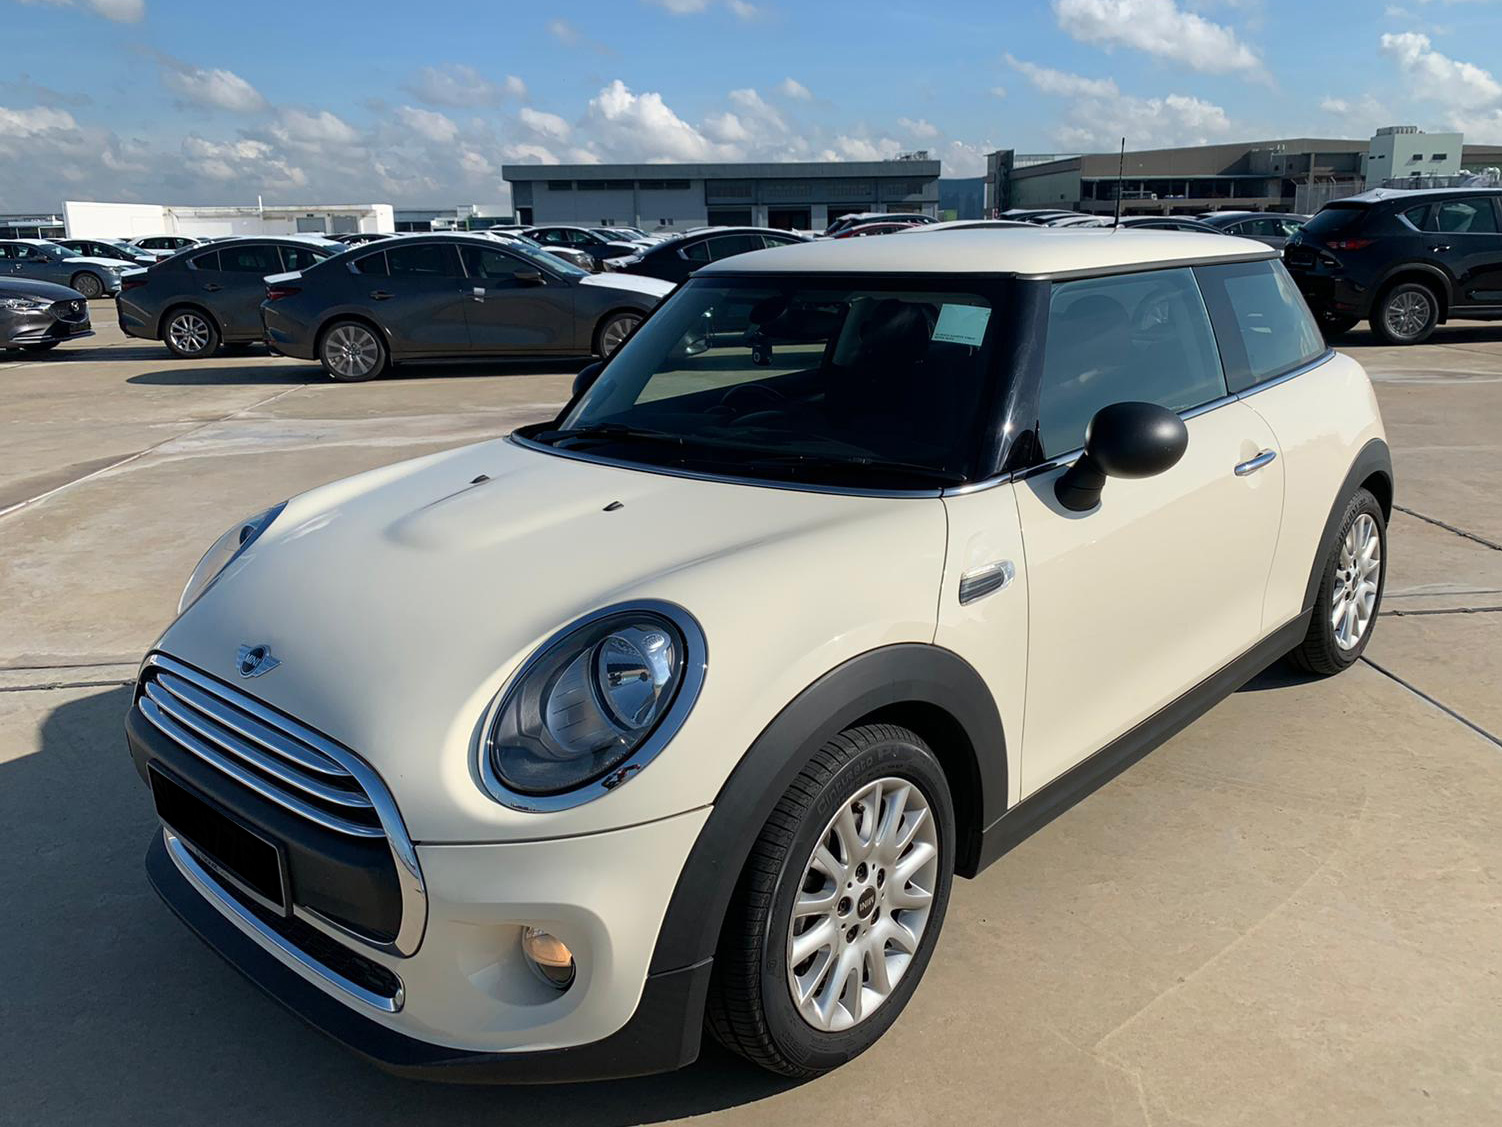 MINI One 1.2A Turbo (For Rent)